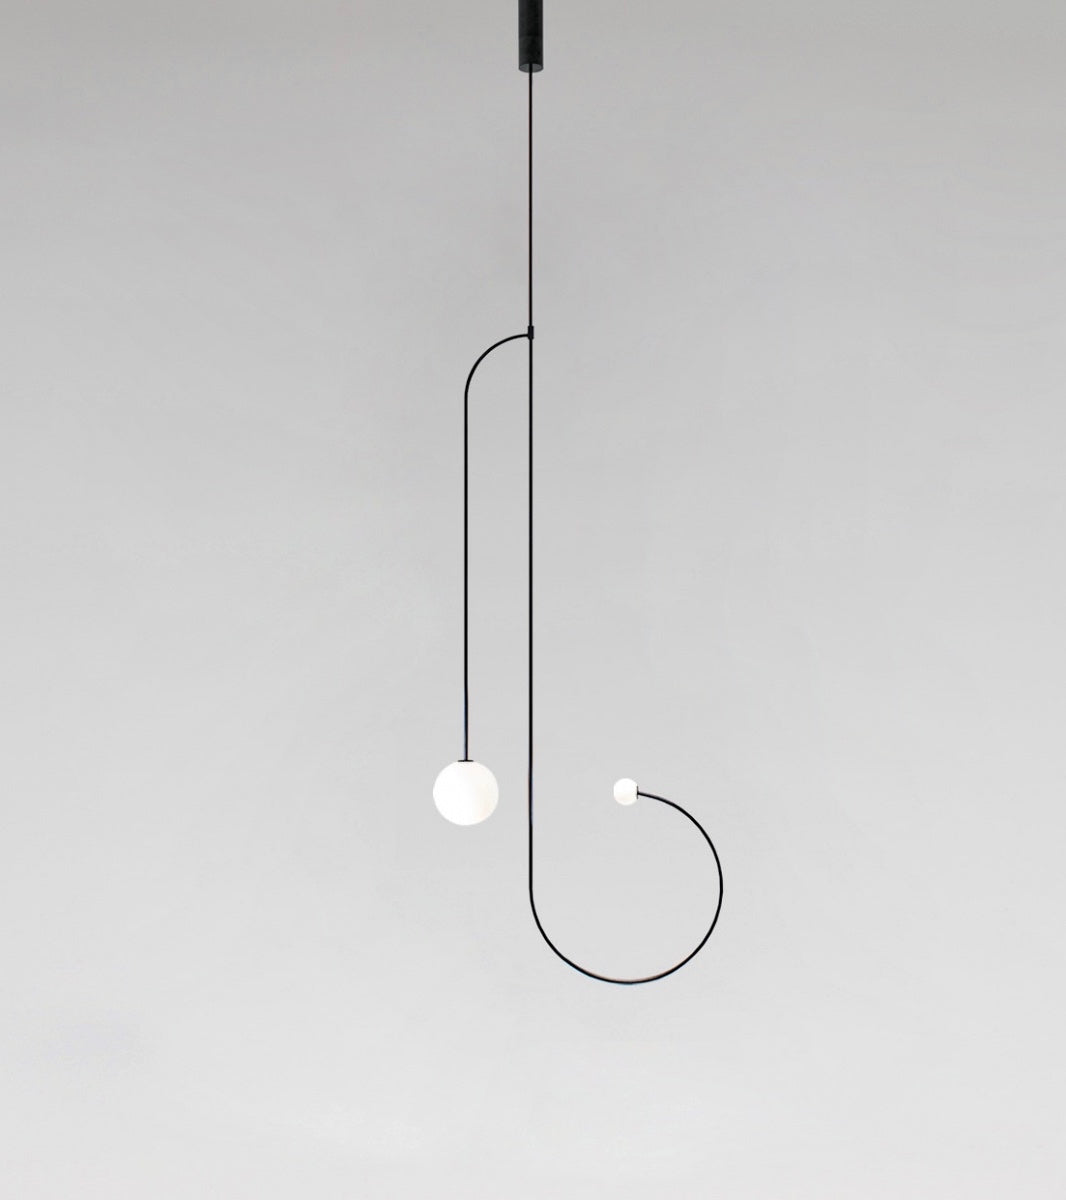 Mobile Chandelier 11 <br> by Michael Anastassiades